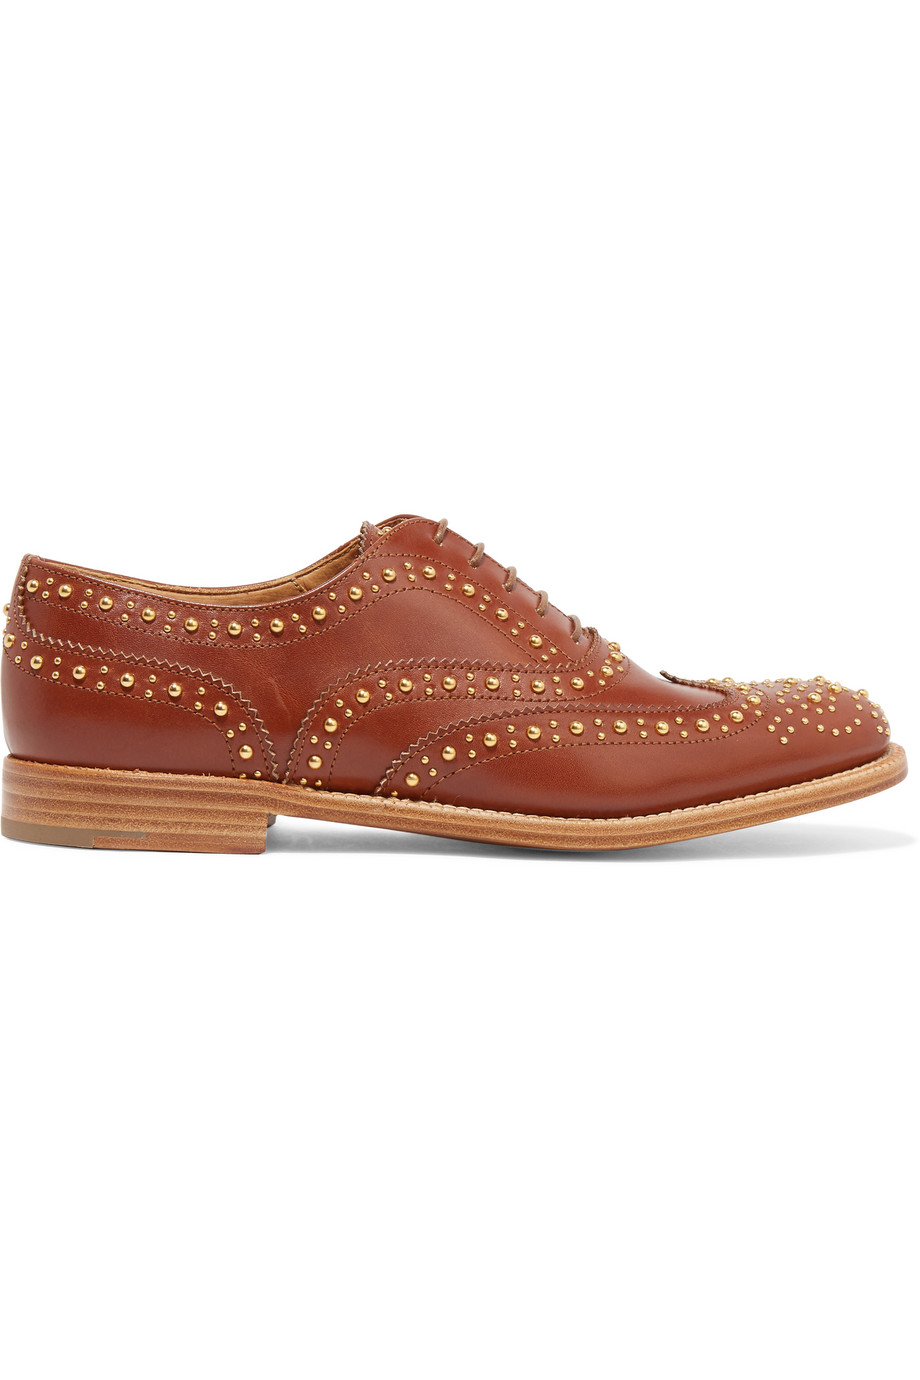 Church's The Burwood Met Studded Leather Brogues, Tan, Women's US Size: 4.5, Size: 35